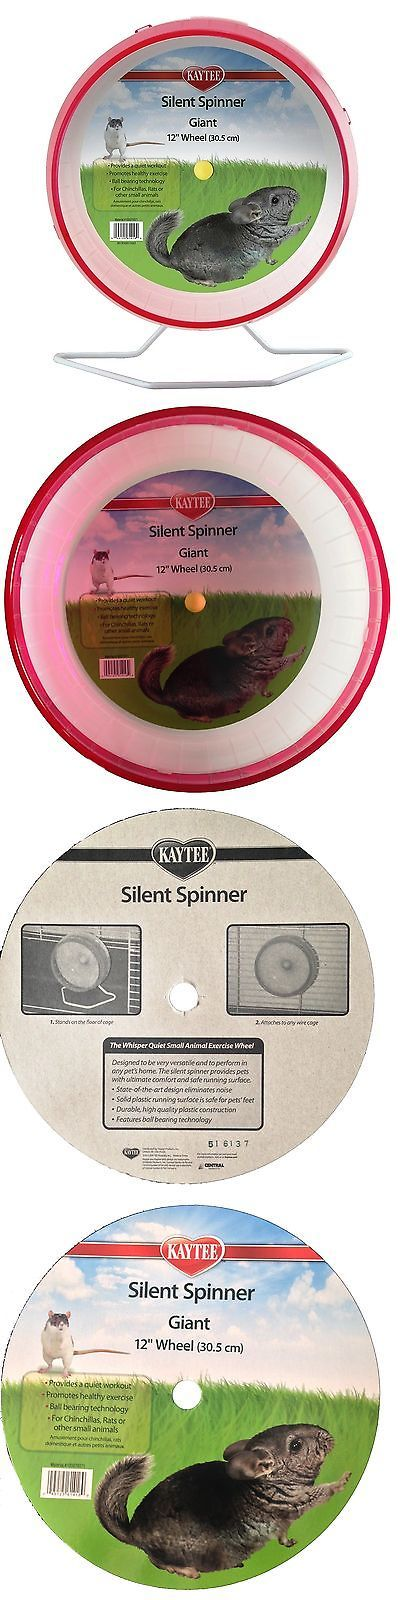 Exercise and Toys 63113: Kaytee Silent Spinner Exercise Wheel Large Giant -> BUY IT NOW ONLY: $43.33 on eBay!